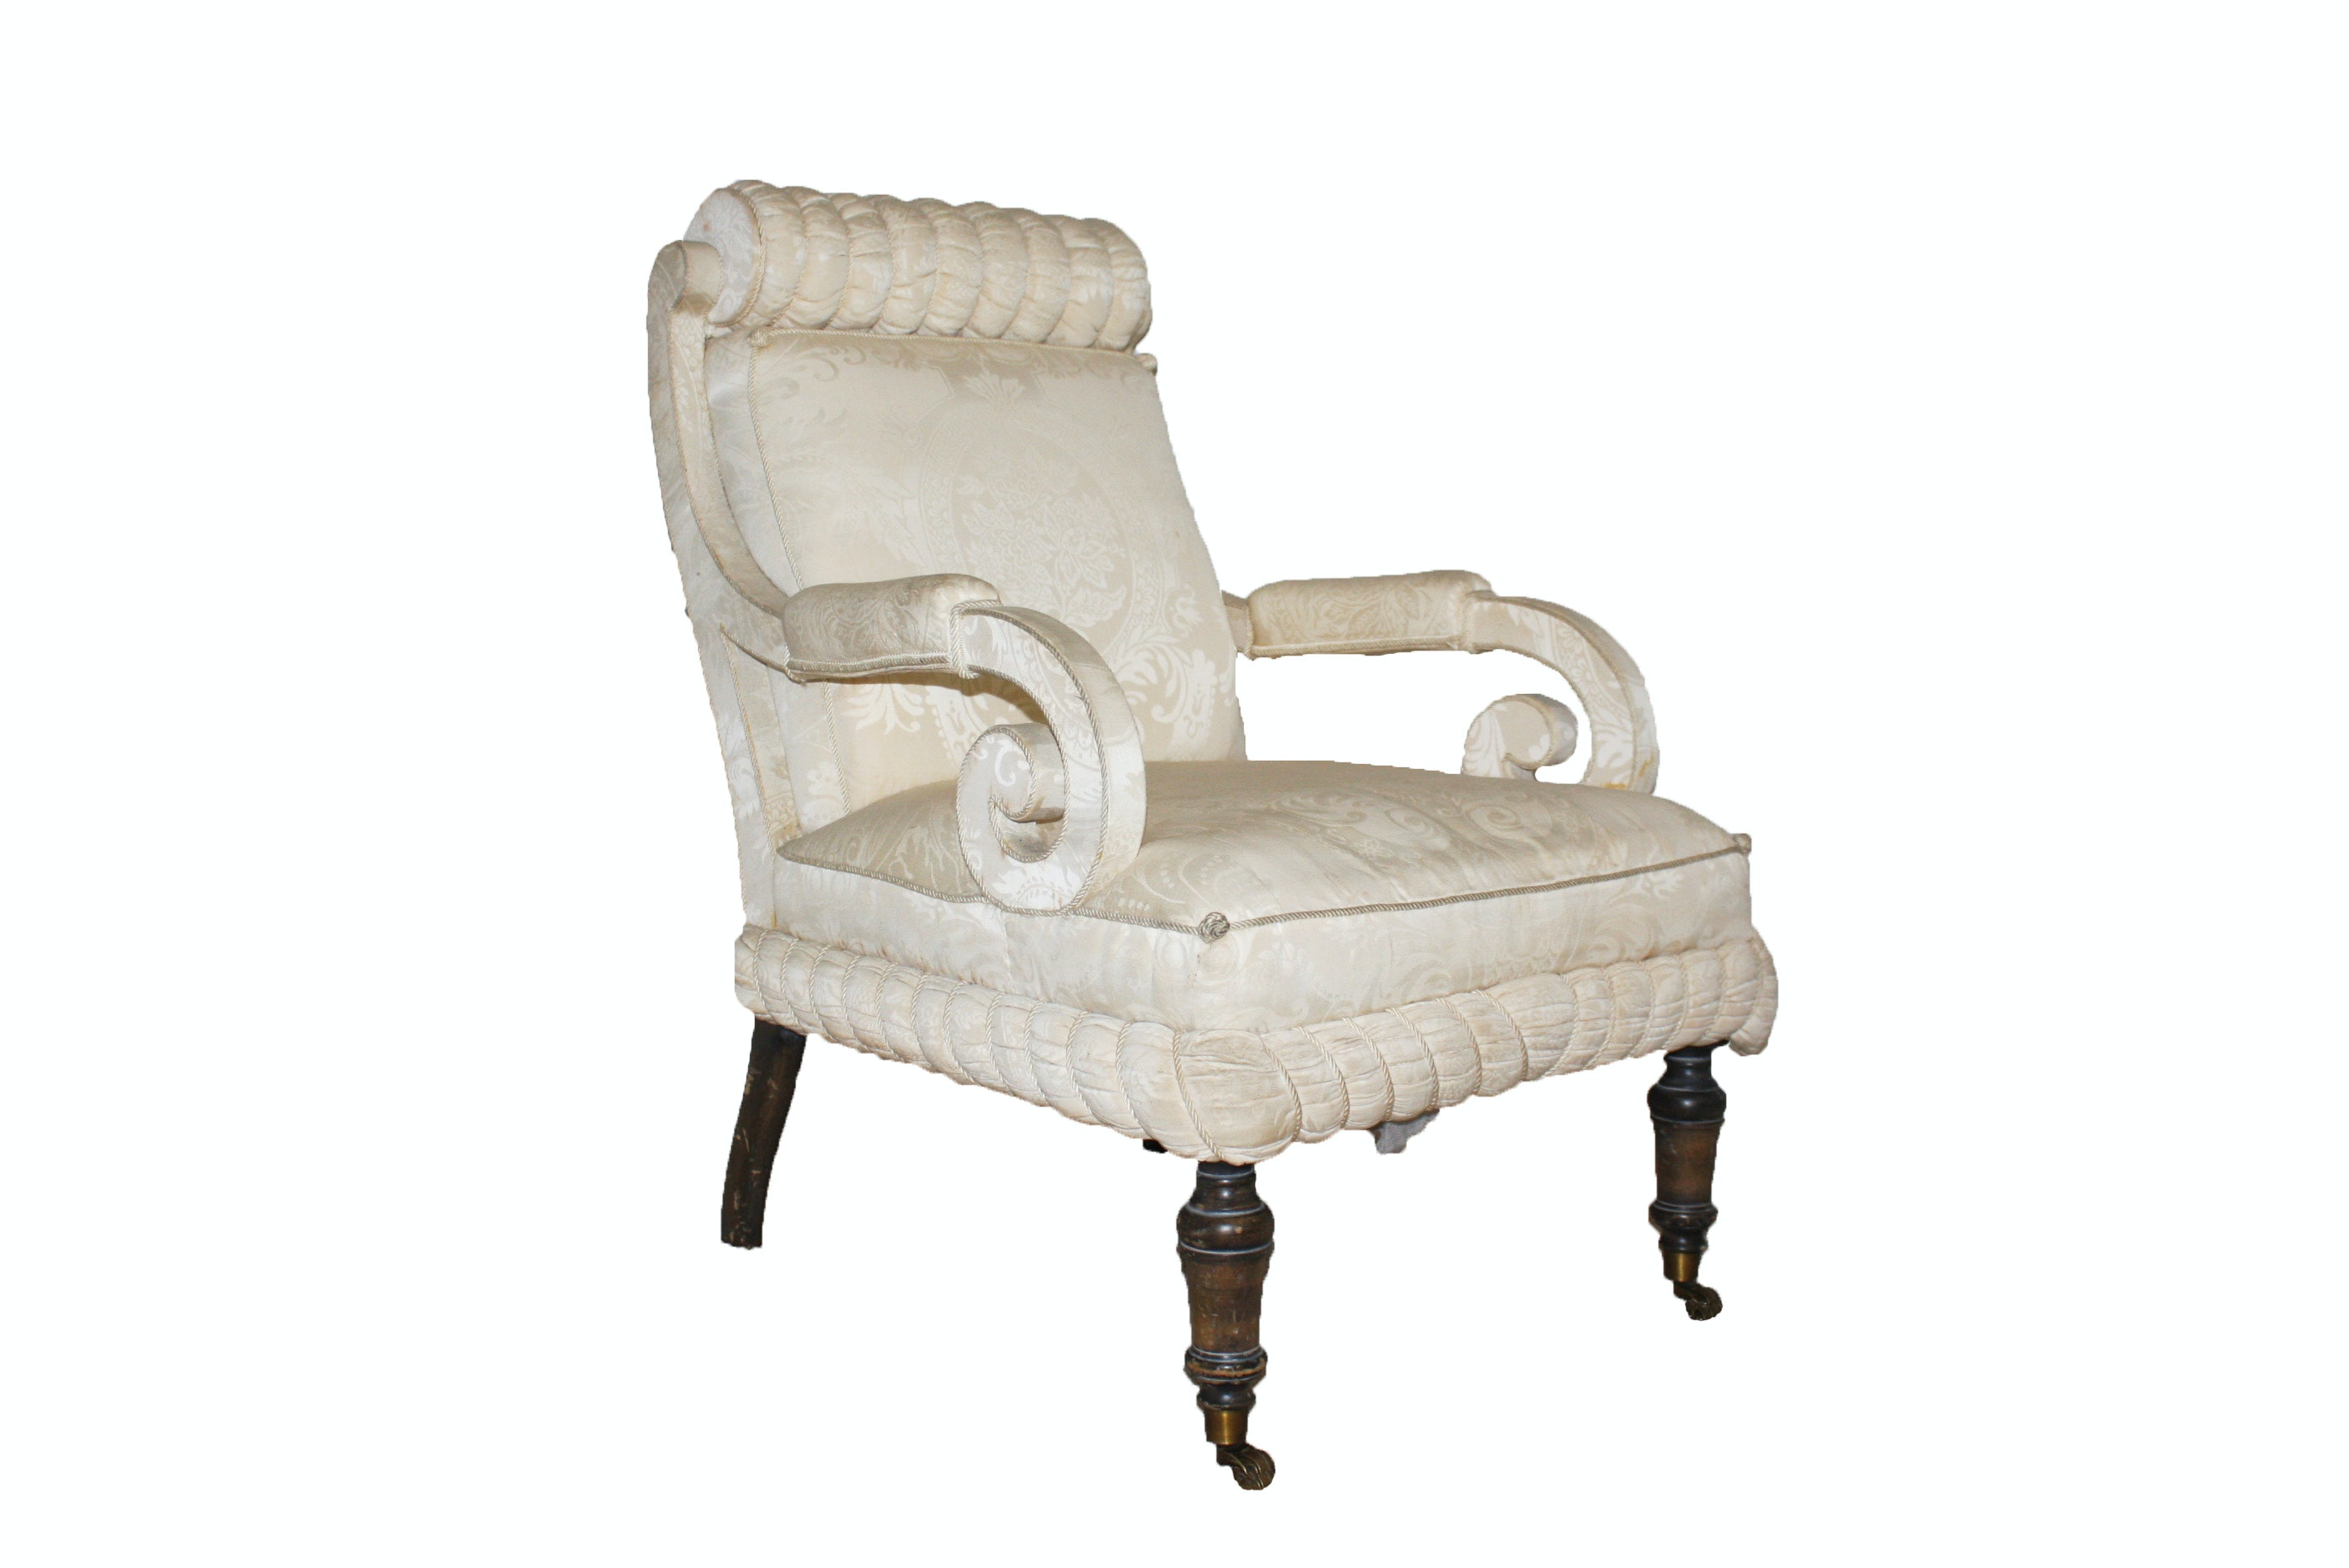 Regency Style Upholstered Armchair by Interior Crafts